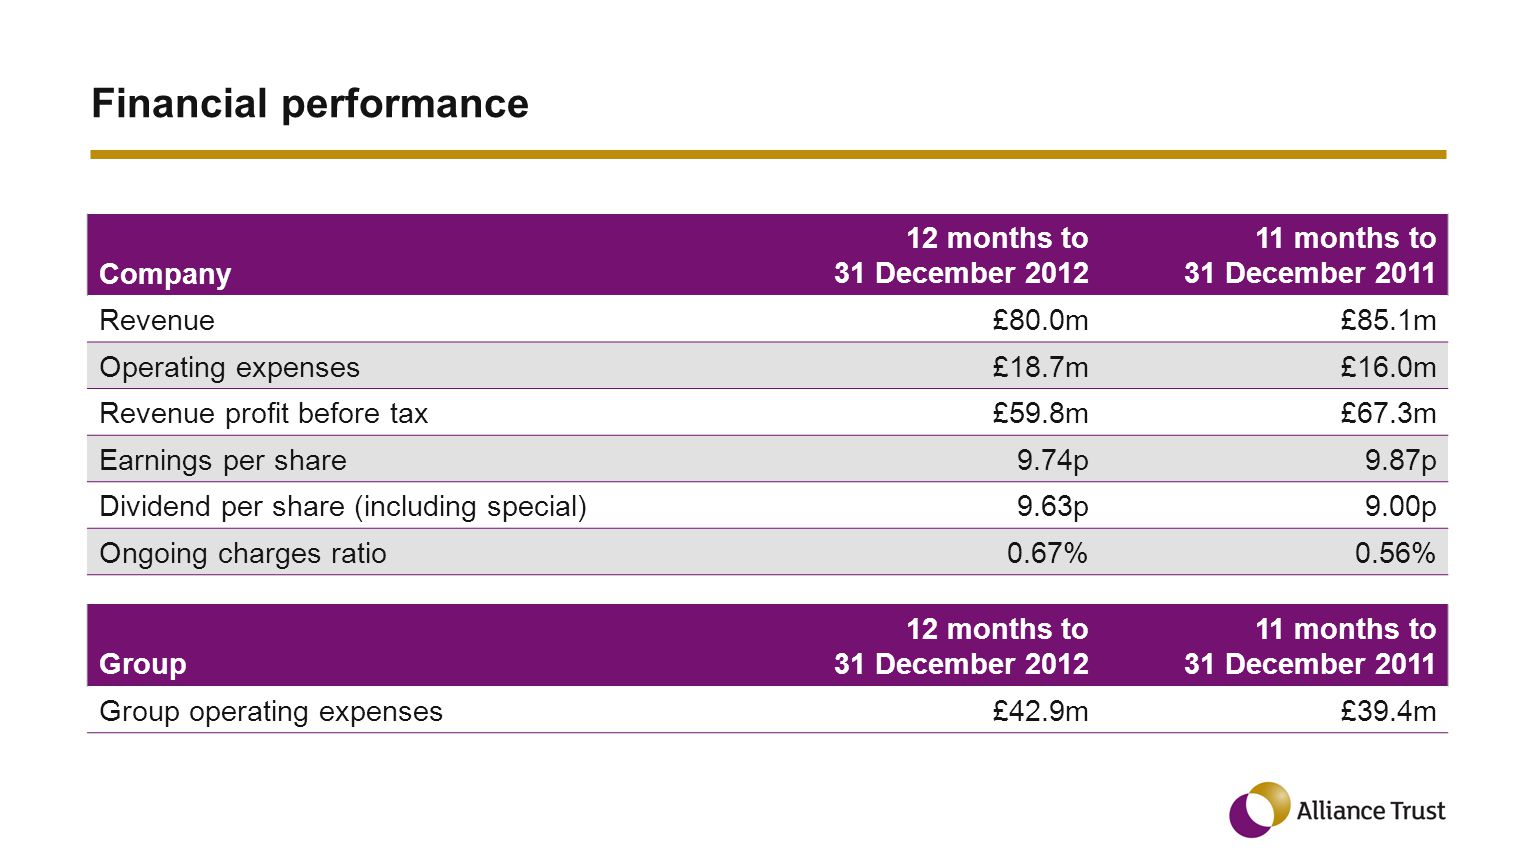 Financial performance Company 12 months to 31 December 2012 11 months to 31 December 2011 Revenue£80.0m£85.1m Operating expenses£18.7m£16.0m Revenue profit before tax£59.8m£67.3m Earnings per share9.74p9.87p Dividend per share (including special)9.63p9.00p Ongoing charges ratio0.67%0.56% Group 12 months to 31 December 2012 11 months to 31 December 2011 Group operating expenses£42.9m£39.4m